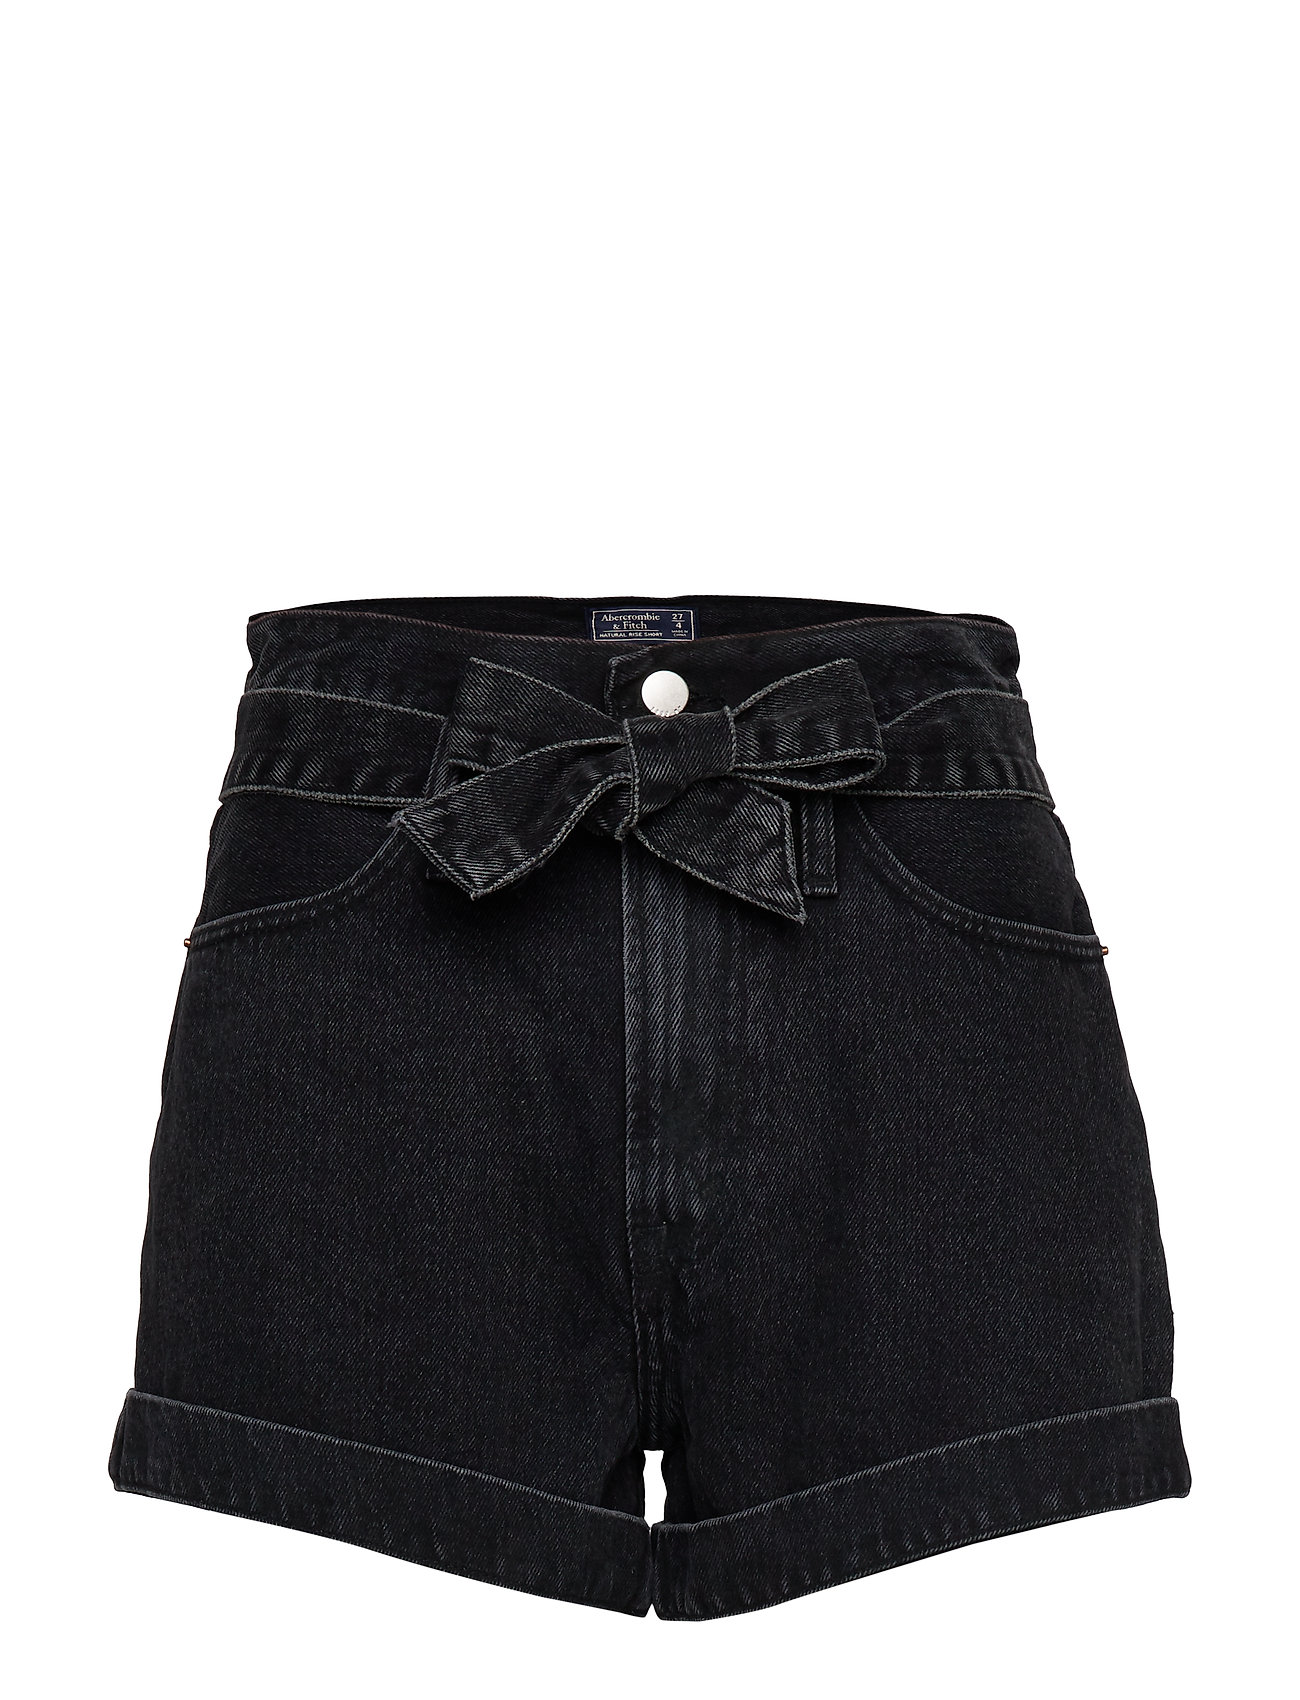 Abercrombie & Fitch Ultra-High Rise Belted Black Shorts - WASHED BLACK